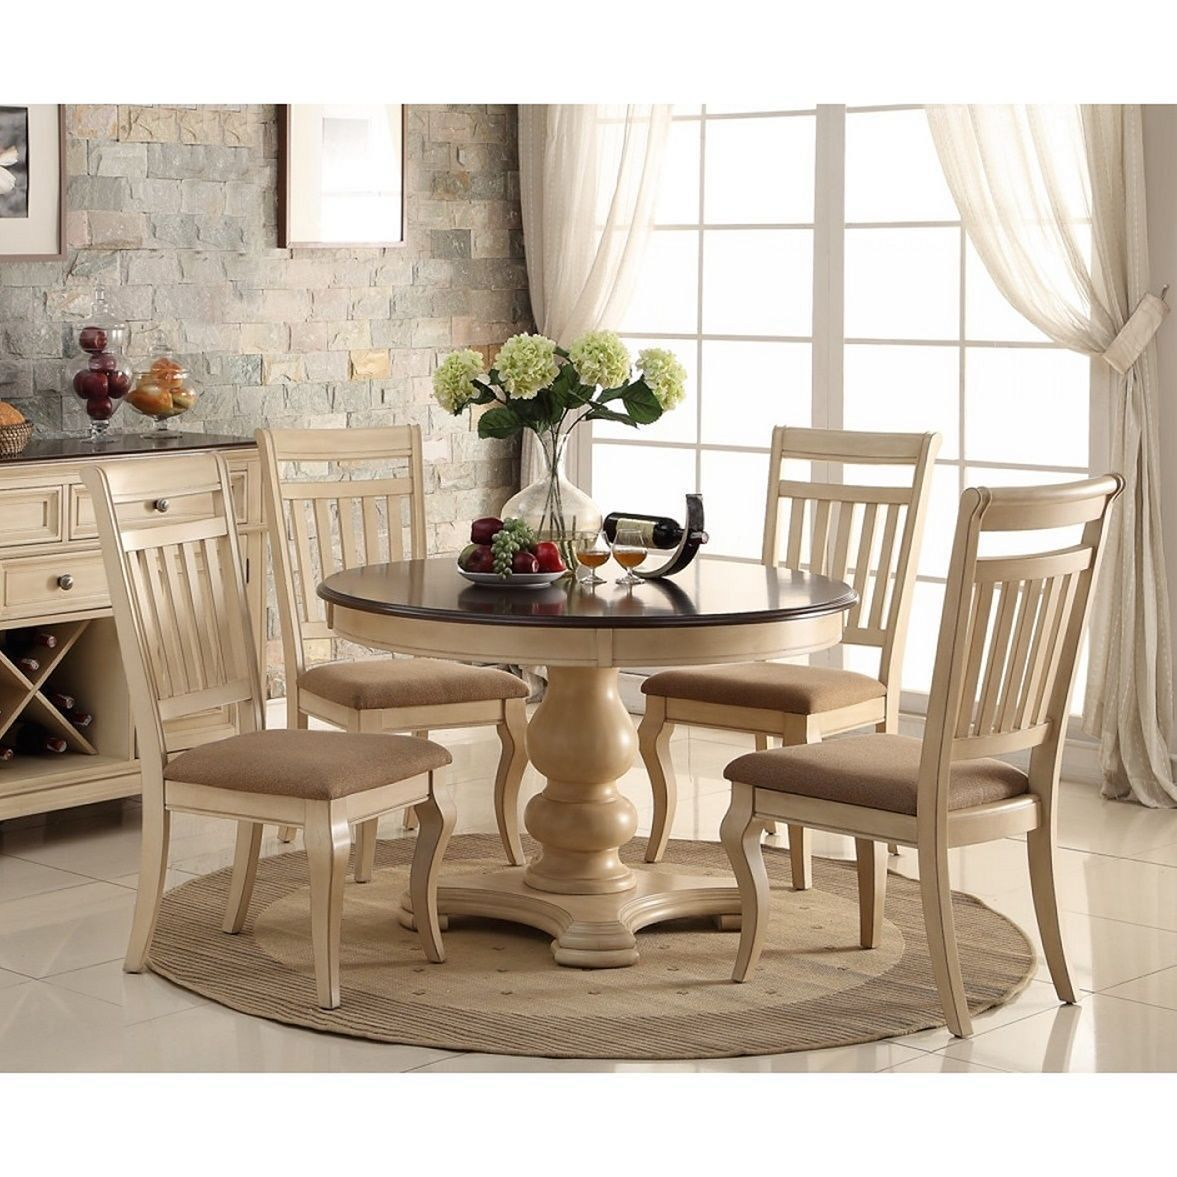 Wonderful Awesome 40+ Awesome Dining Set Design Ideas For Dinner More Enjoyable  Https:// Nice Ideas